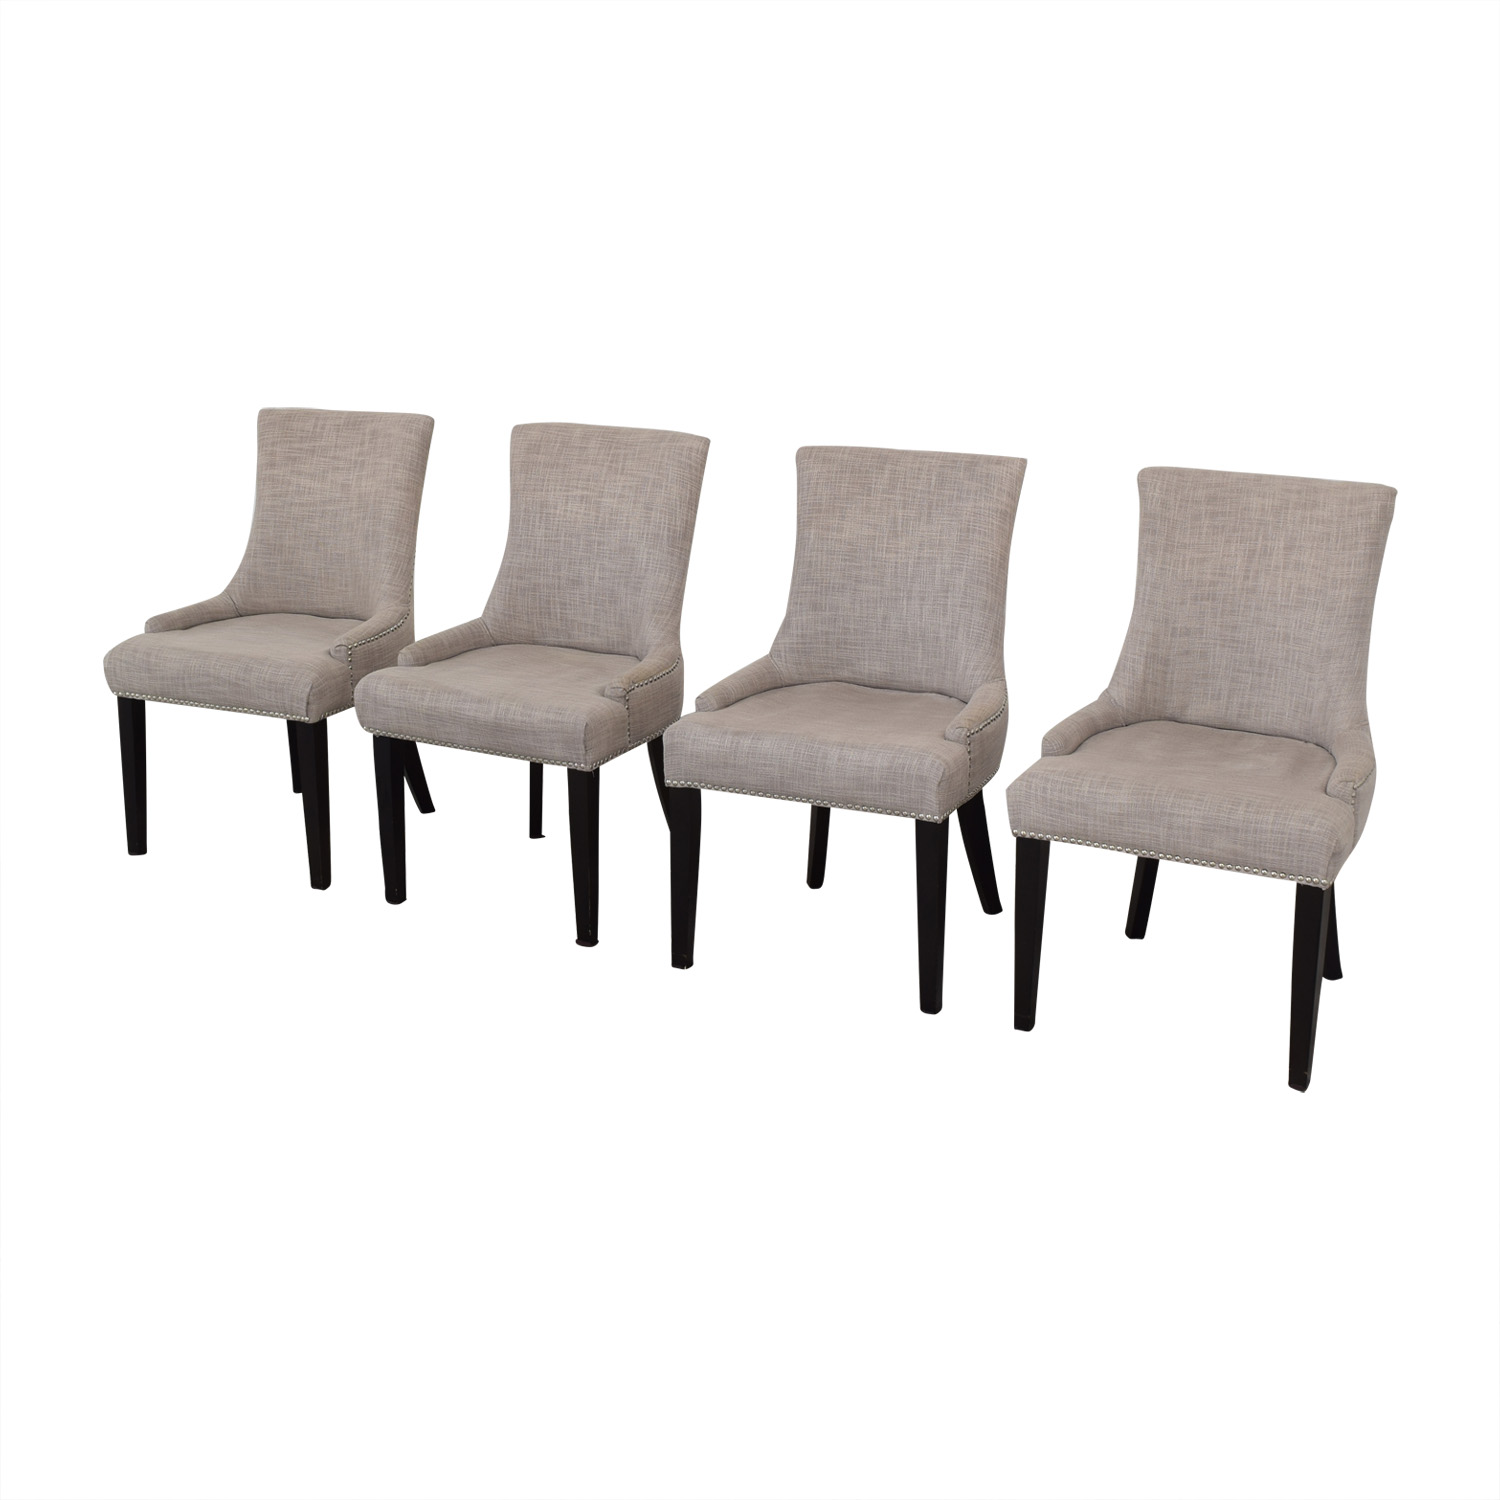 shop Safavieh Lester Dining Chairs Safavieh Dining Chairs